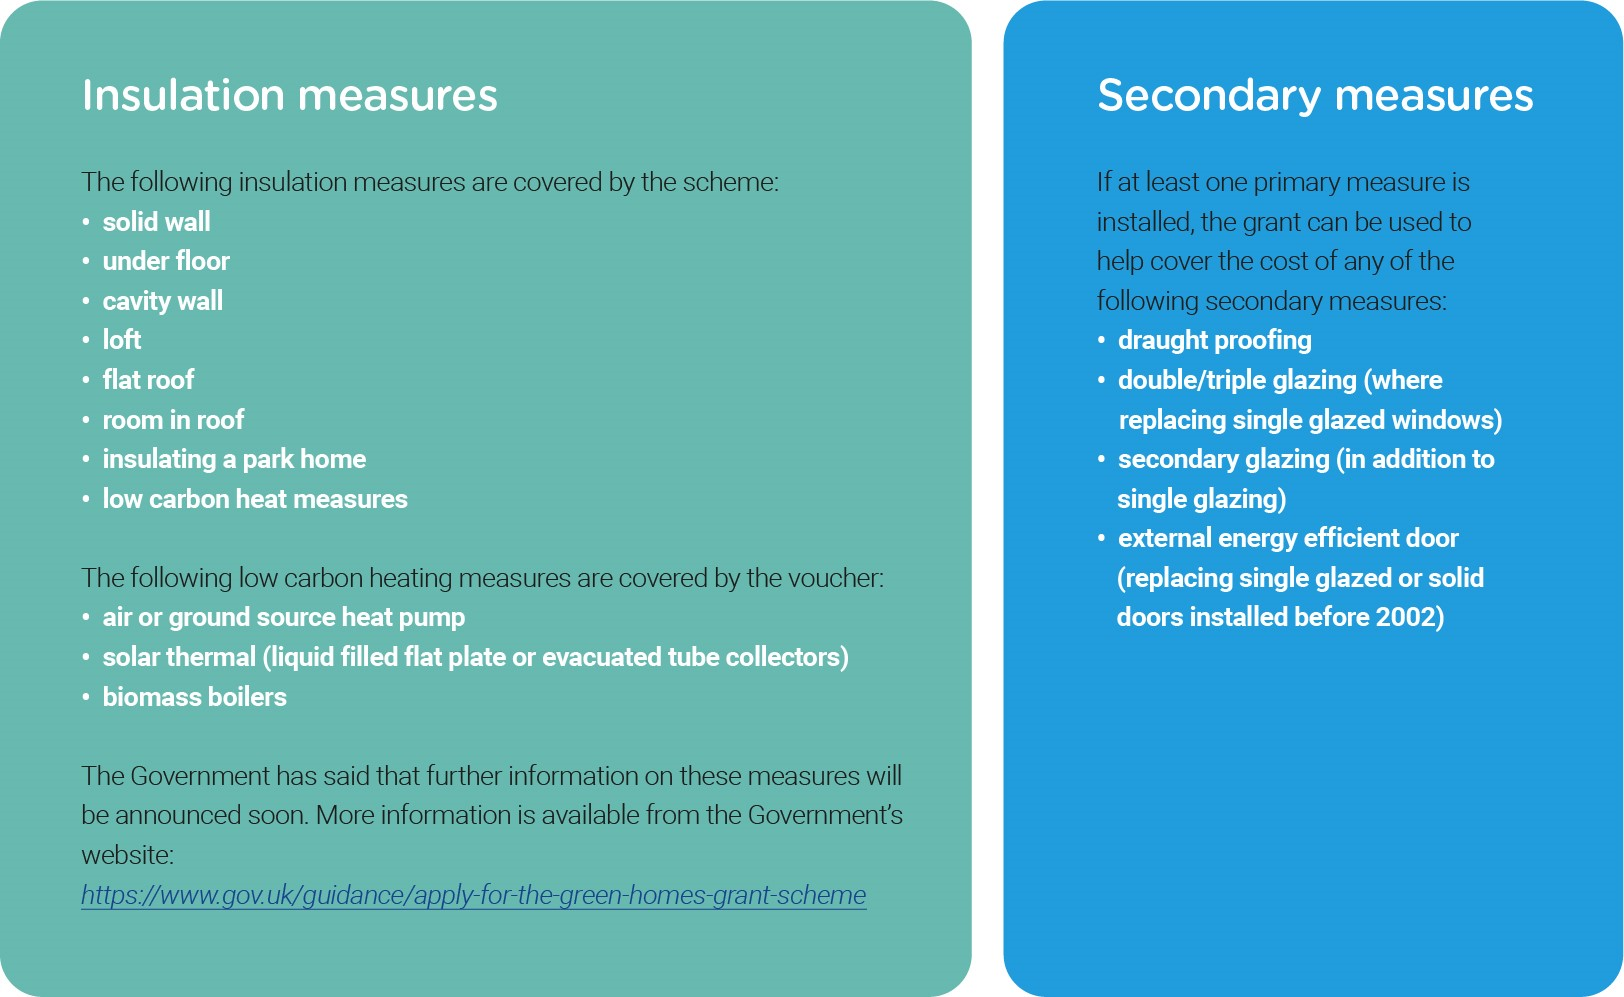 Primary and secondary measures of the Green Homes Grant